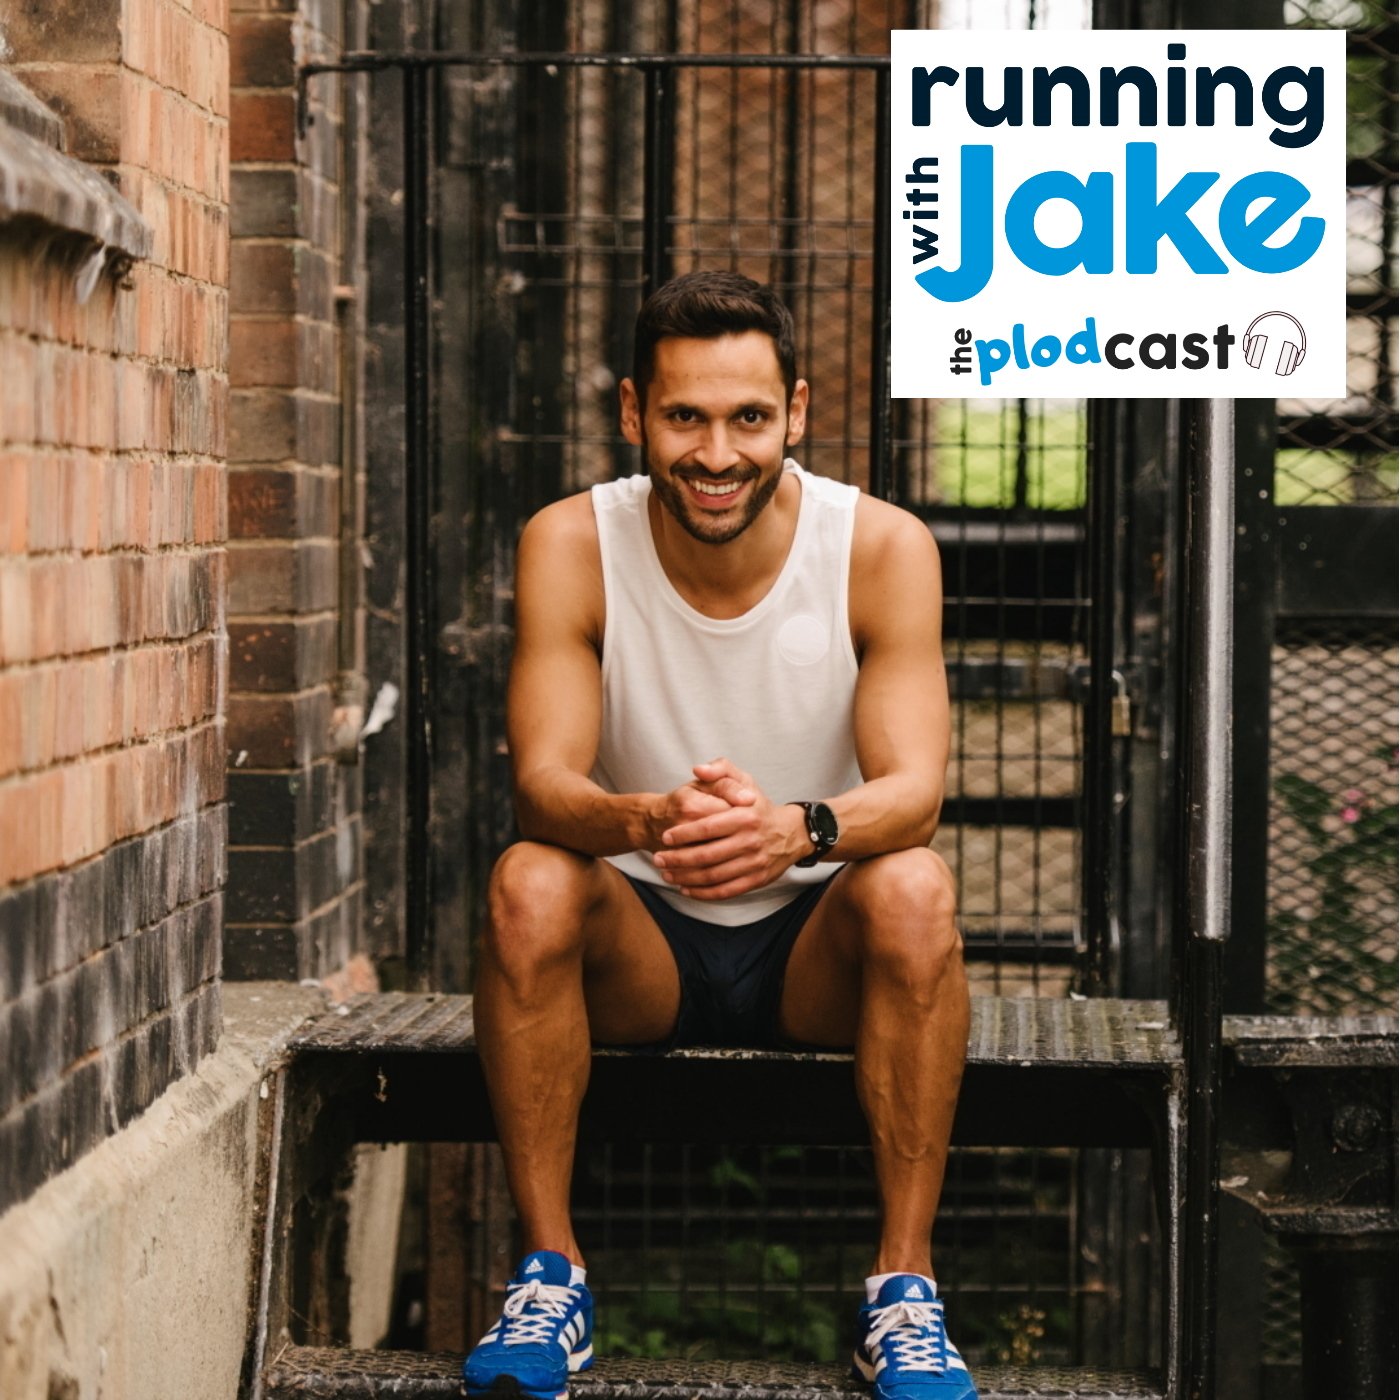 Running with Jake - The PLODcast 039 (Leggin' it to the finish)